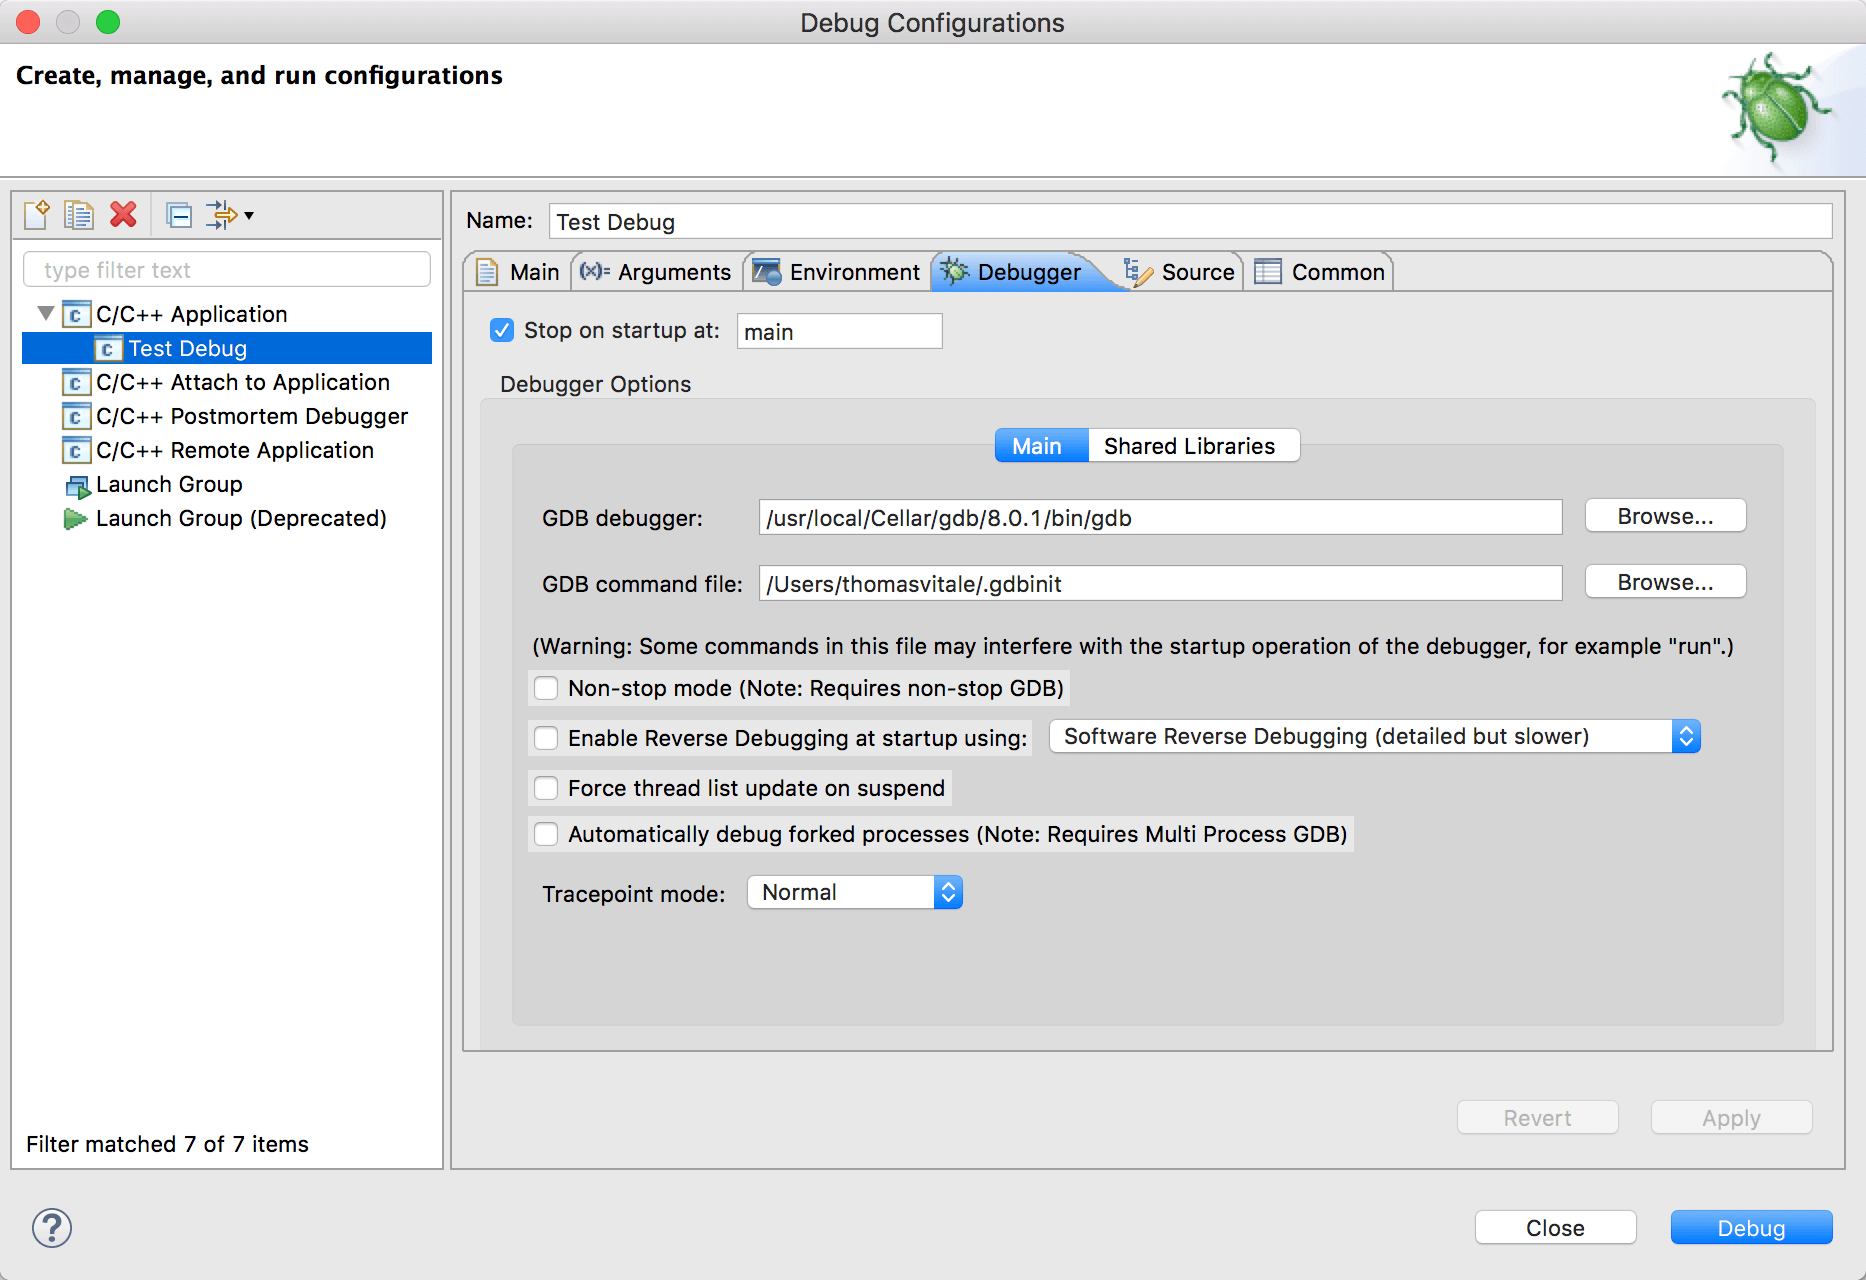 Eclipse window for debug configurations